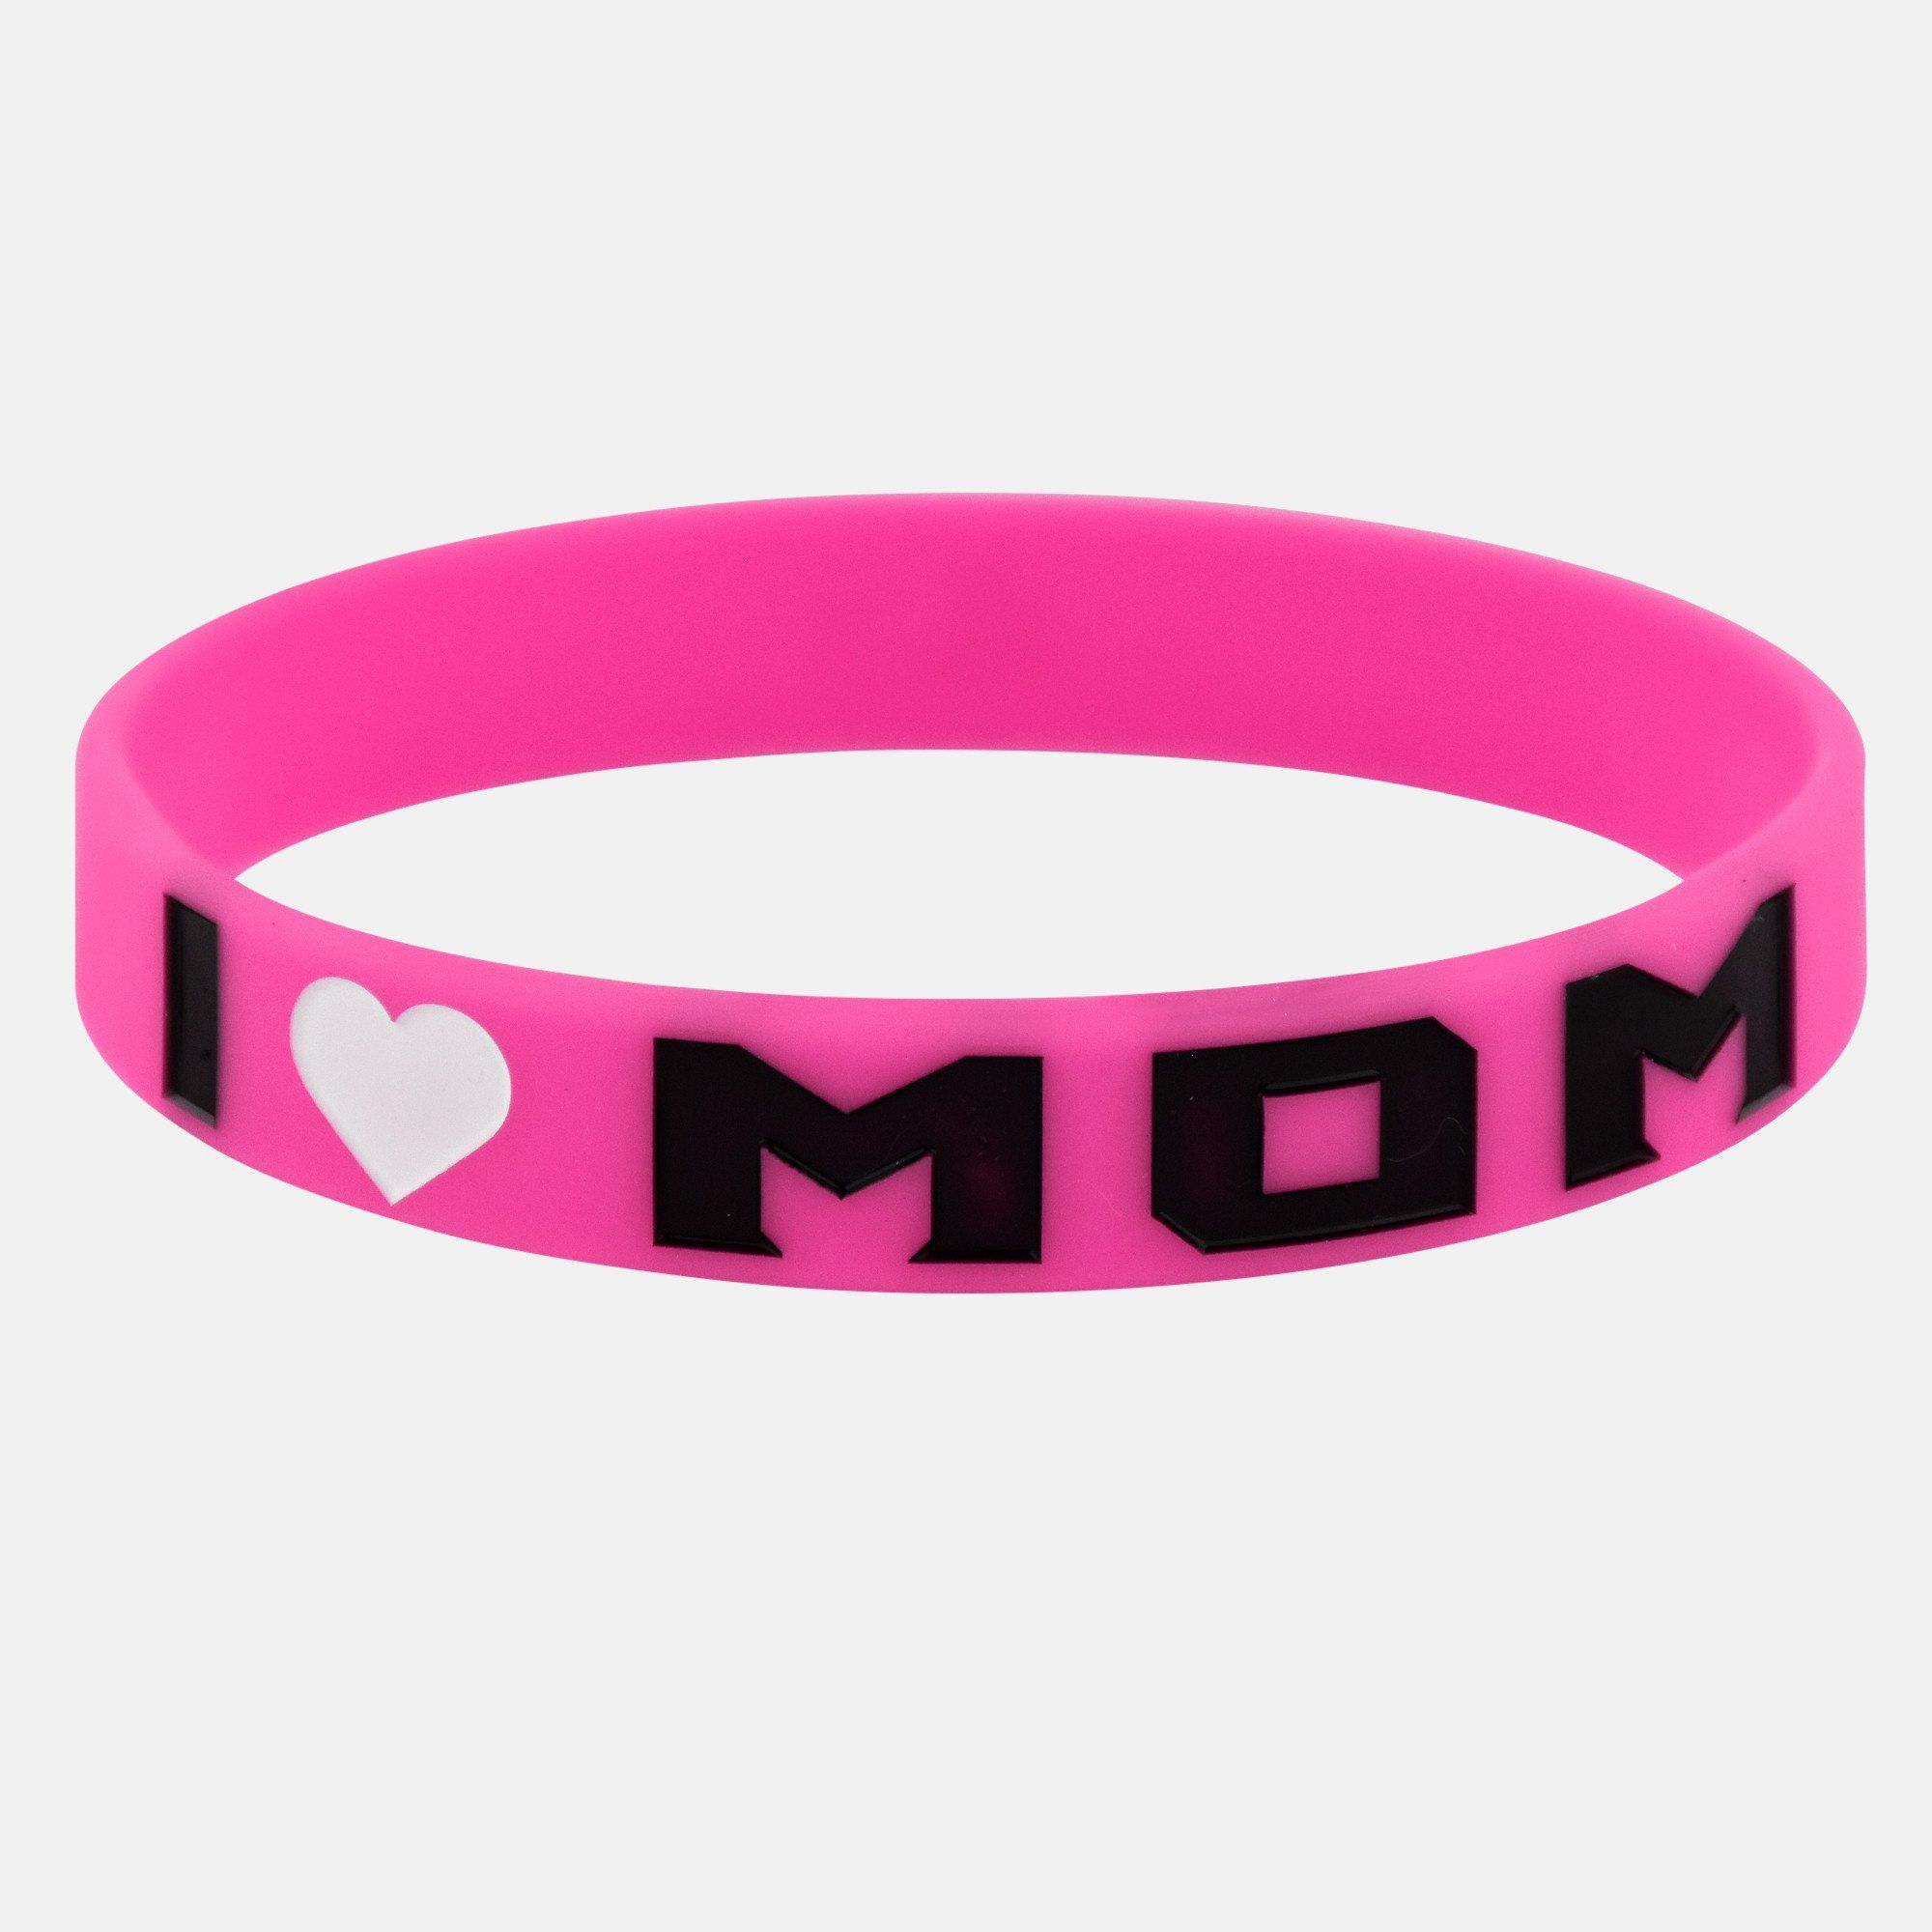 month making what so awareness does mean re bracelet dysautonomia youre that potsy you scones